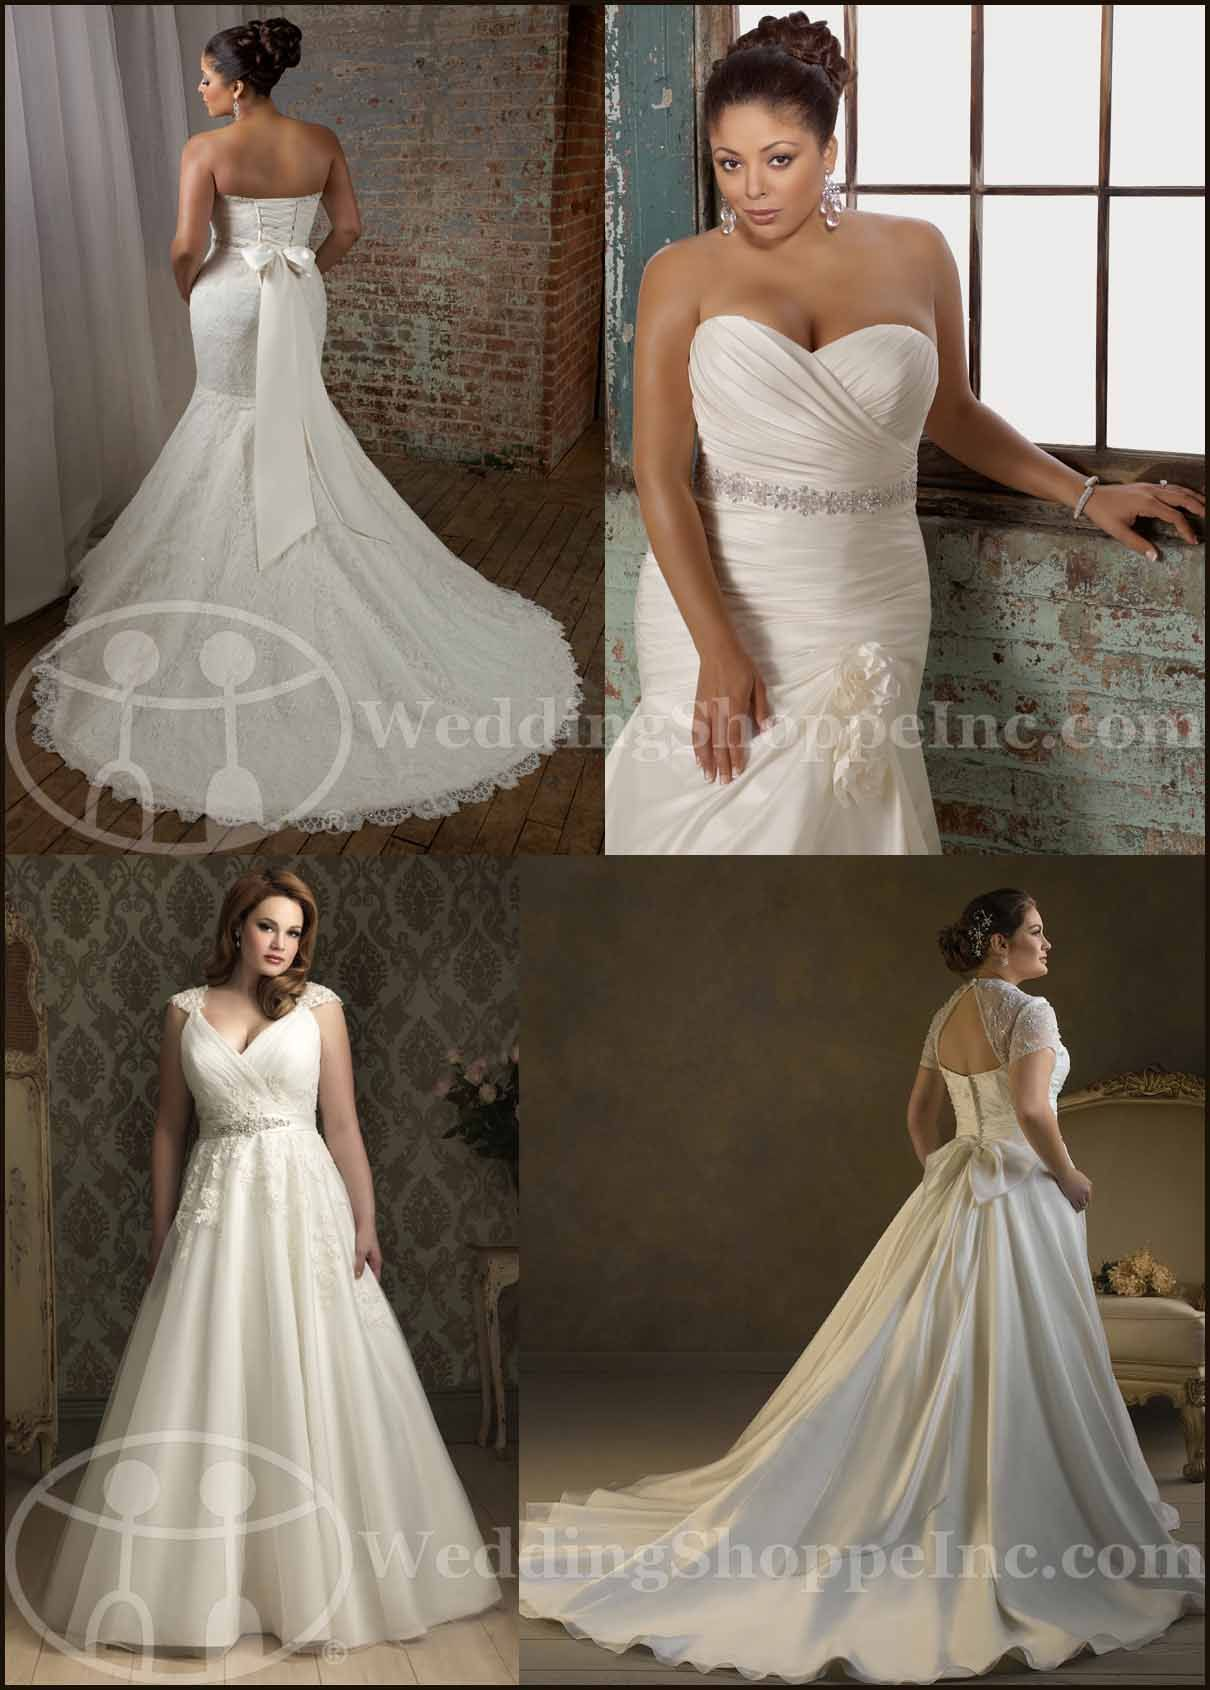 78  images about Wedding Dresses on Pinterest  Plus size wedding ...